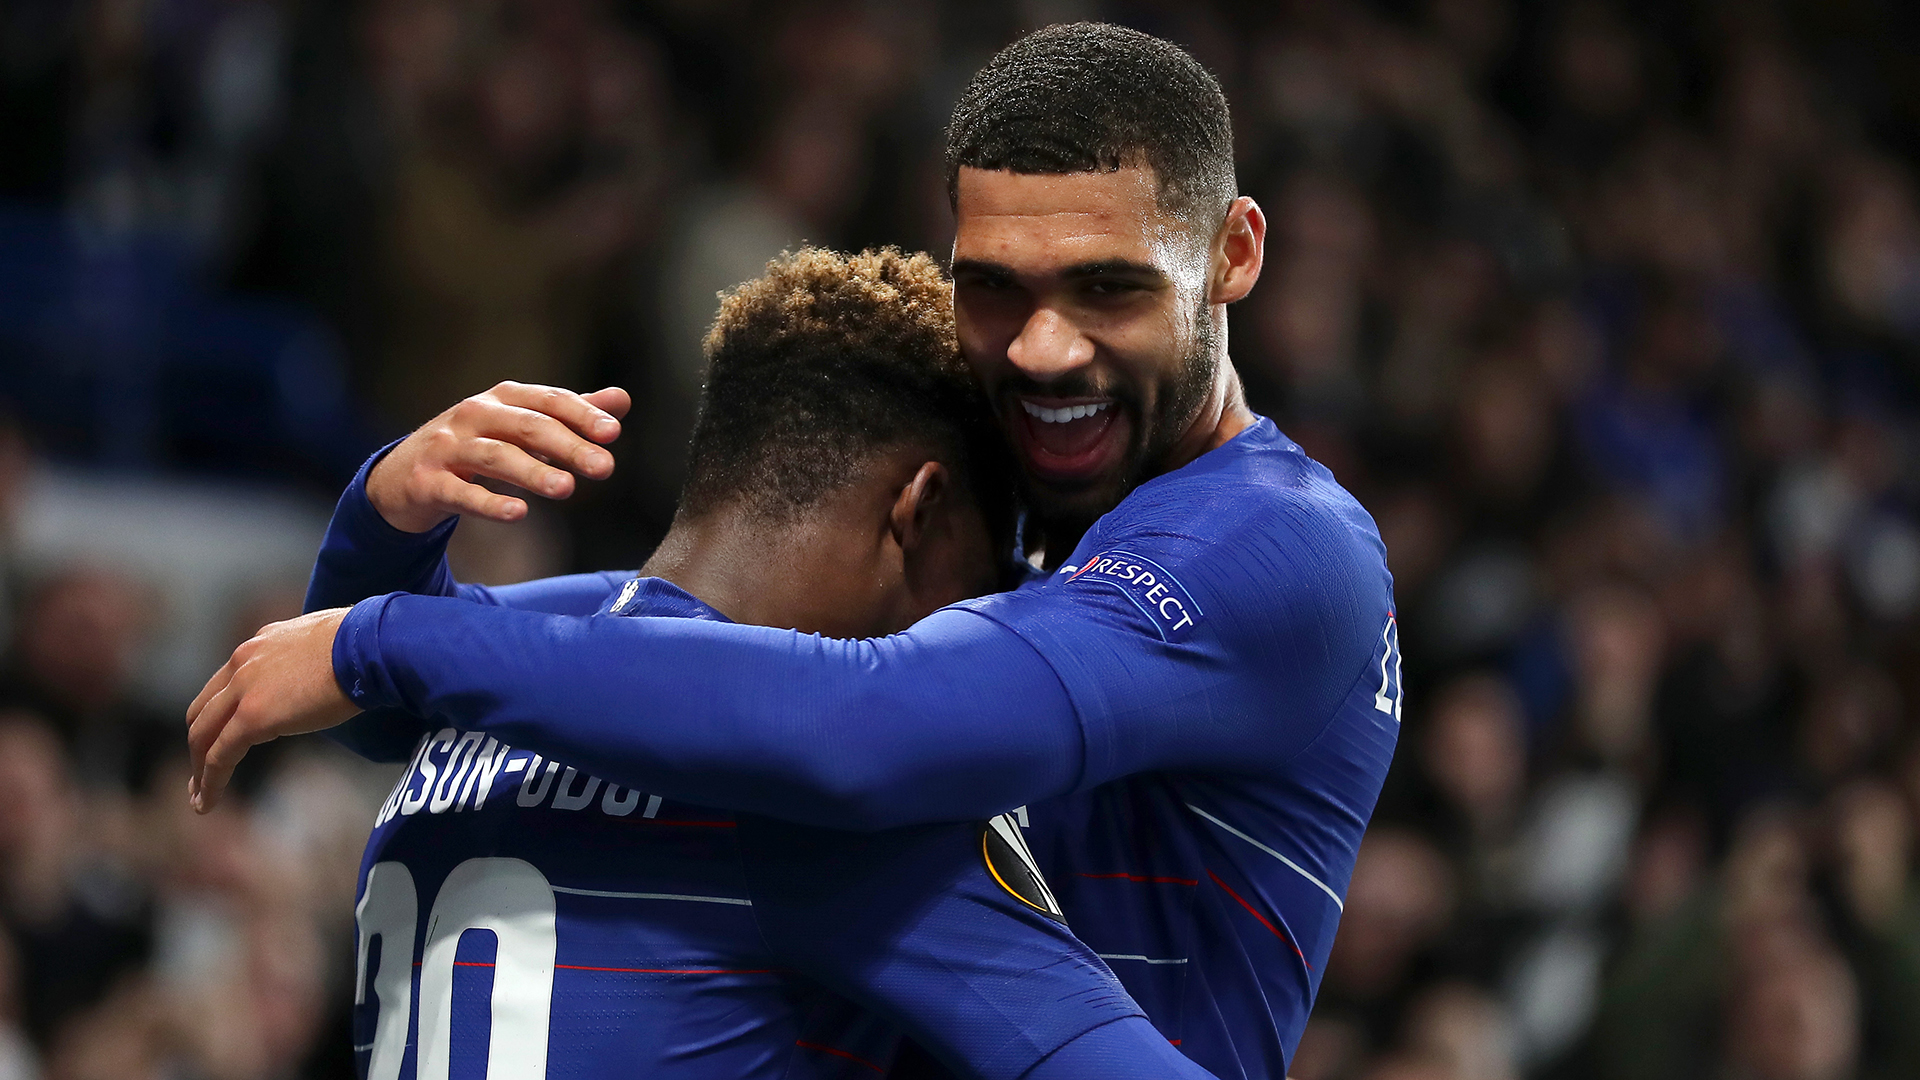 Ruben Loftus-Cheek signs new £150,000-a-week Chelsea deal